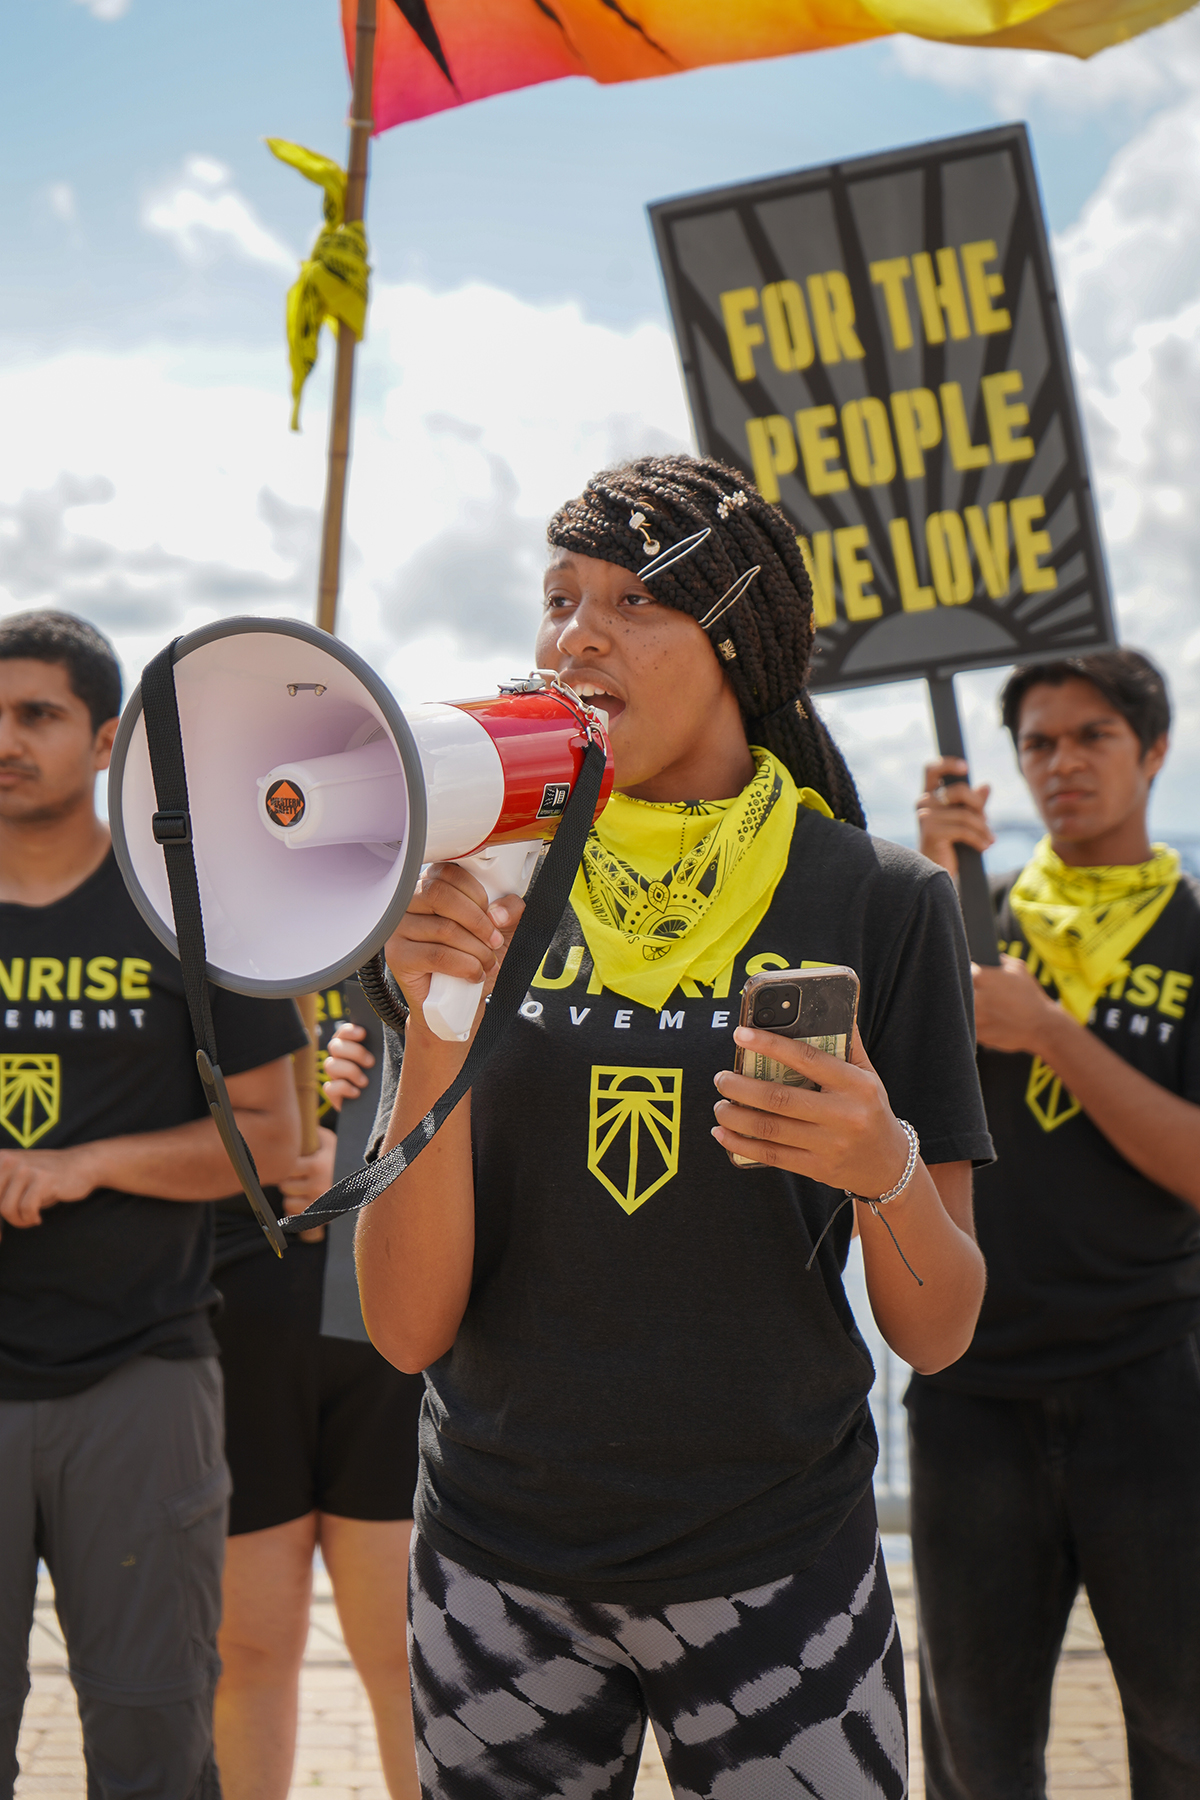 One of the youngest marchers in the group, Chanté, 17, speaks during their demonstration. sunrise movement